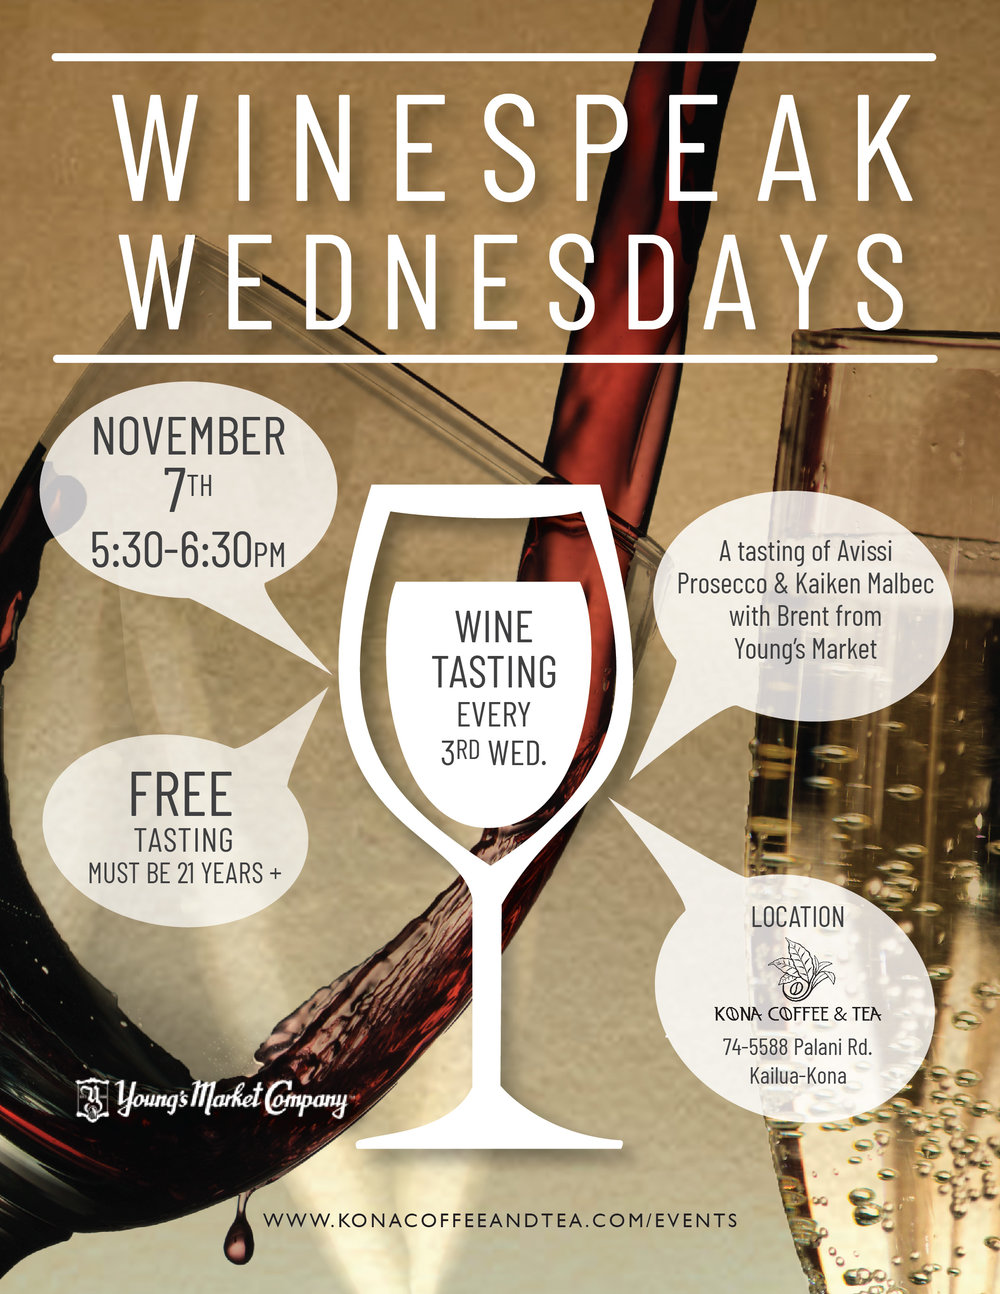 WineSpeak Wednesdays_11.7.18_KCTC 11x17 poster-01.jpg